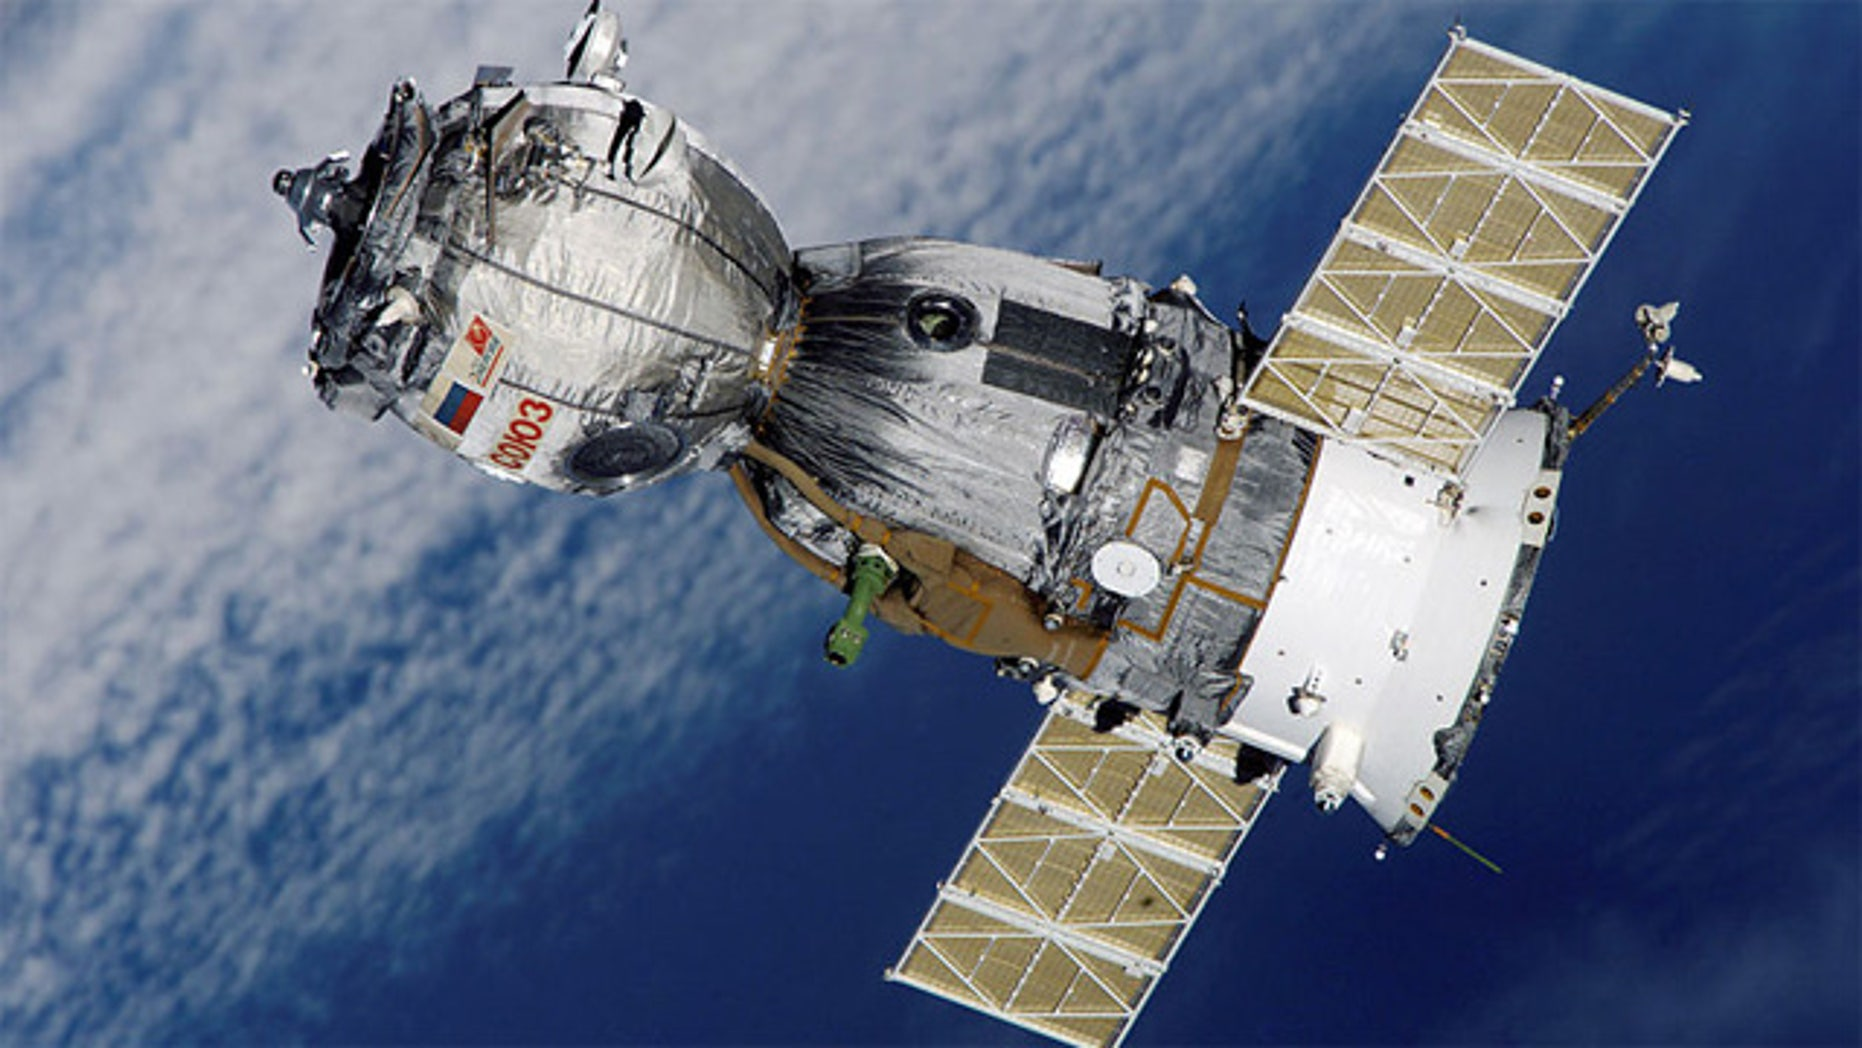 Russia's Soyuz fleet is officially grounded.